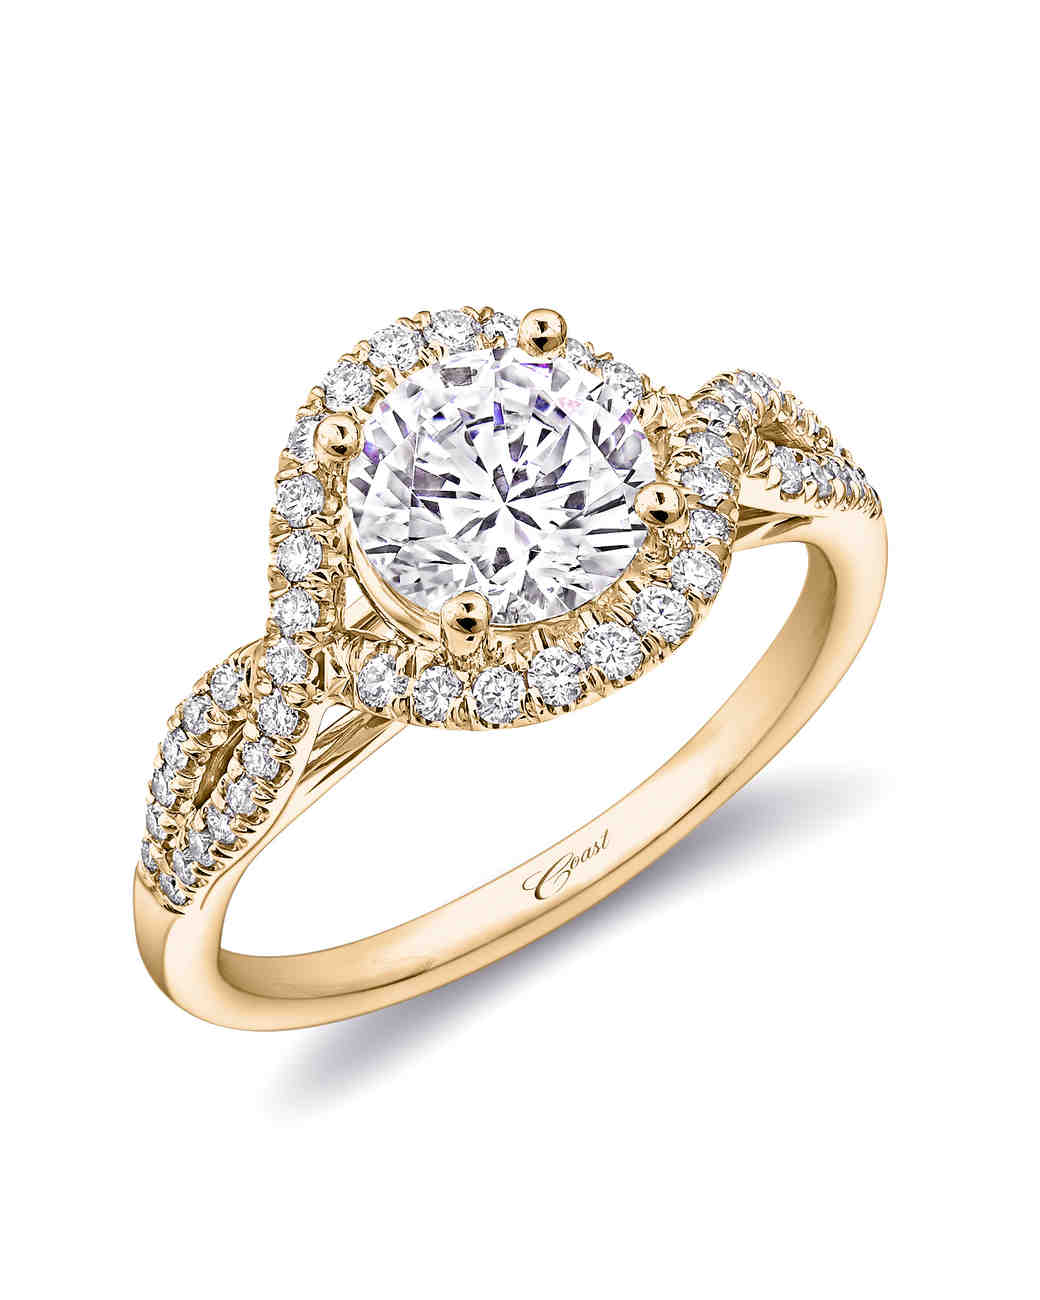 Coast Diamond Yellow Gold Band Engagement Ring with Fishtail Setting